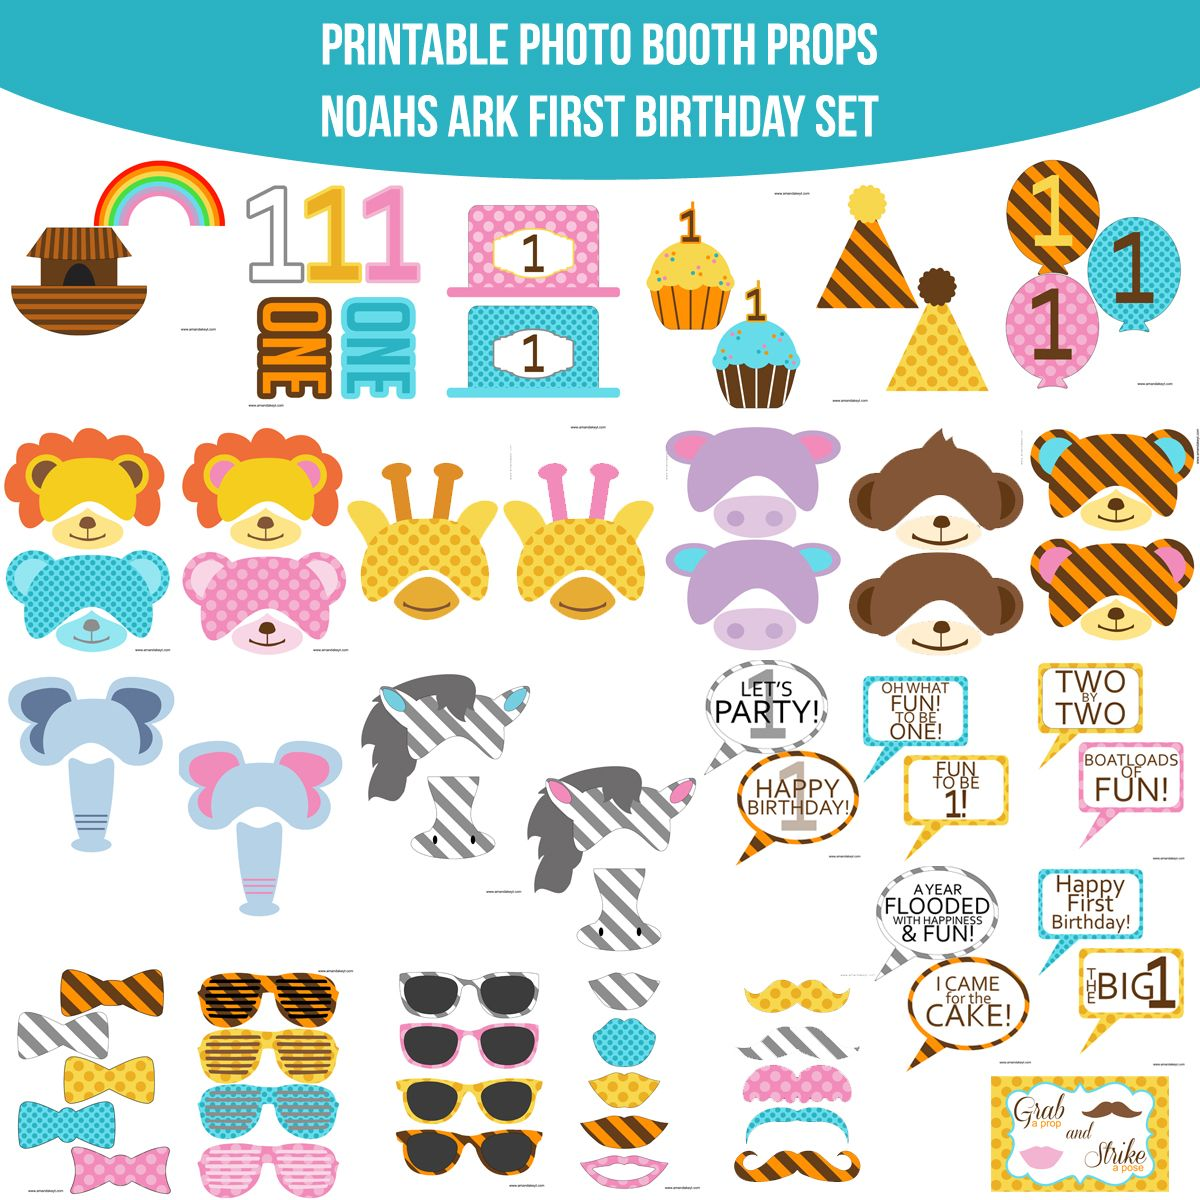 Instant Download Noahs Ark First Birthday Printable Photo